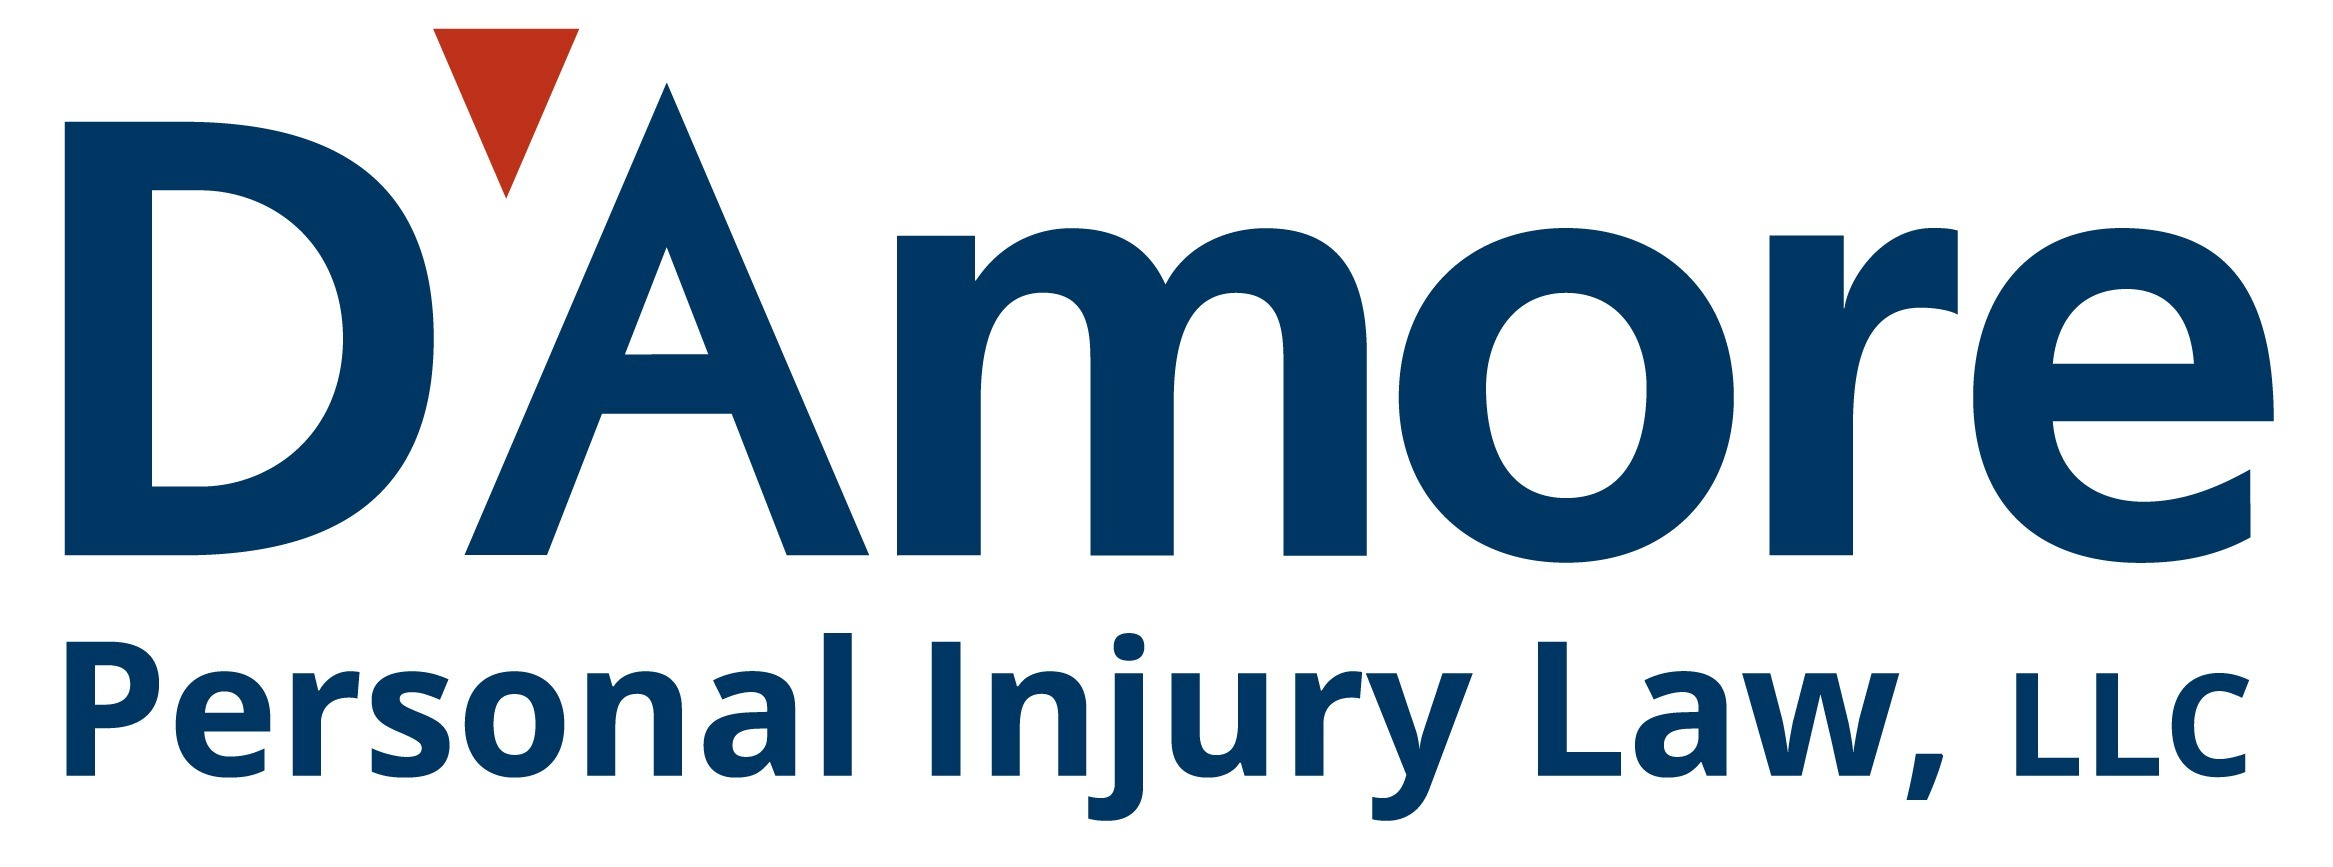 D'Amore Personal Injury Law, LLC + ' logo'